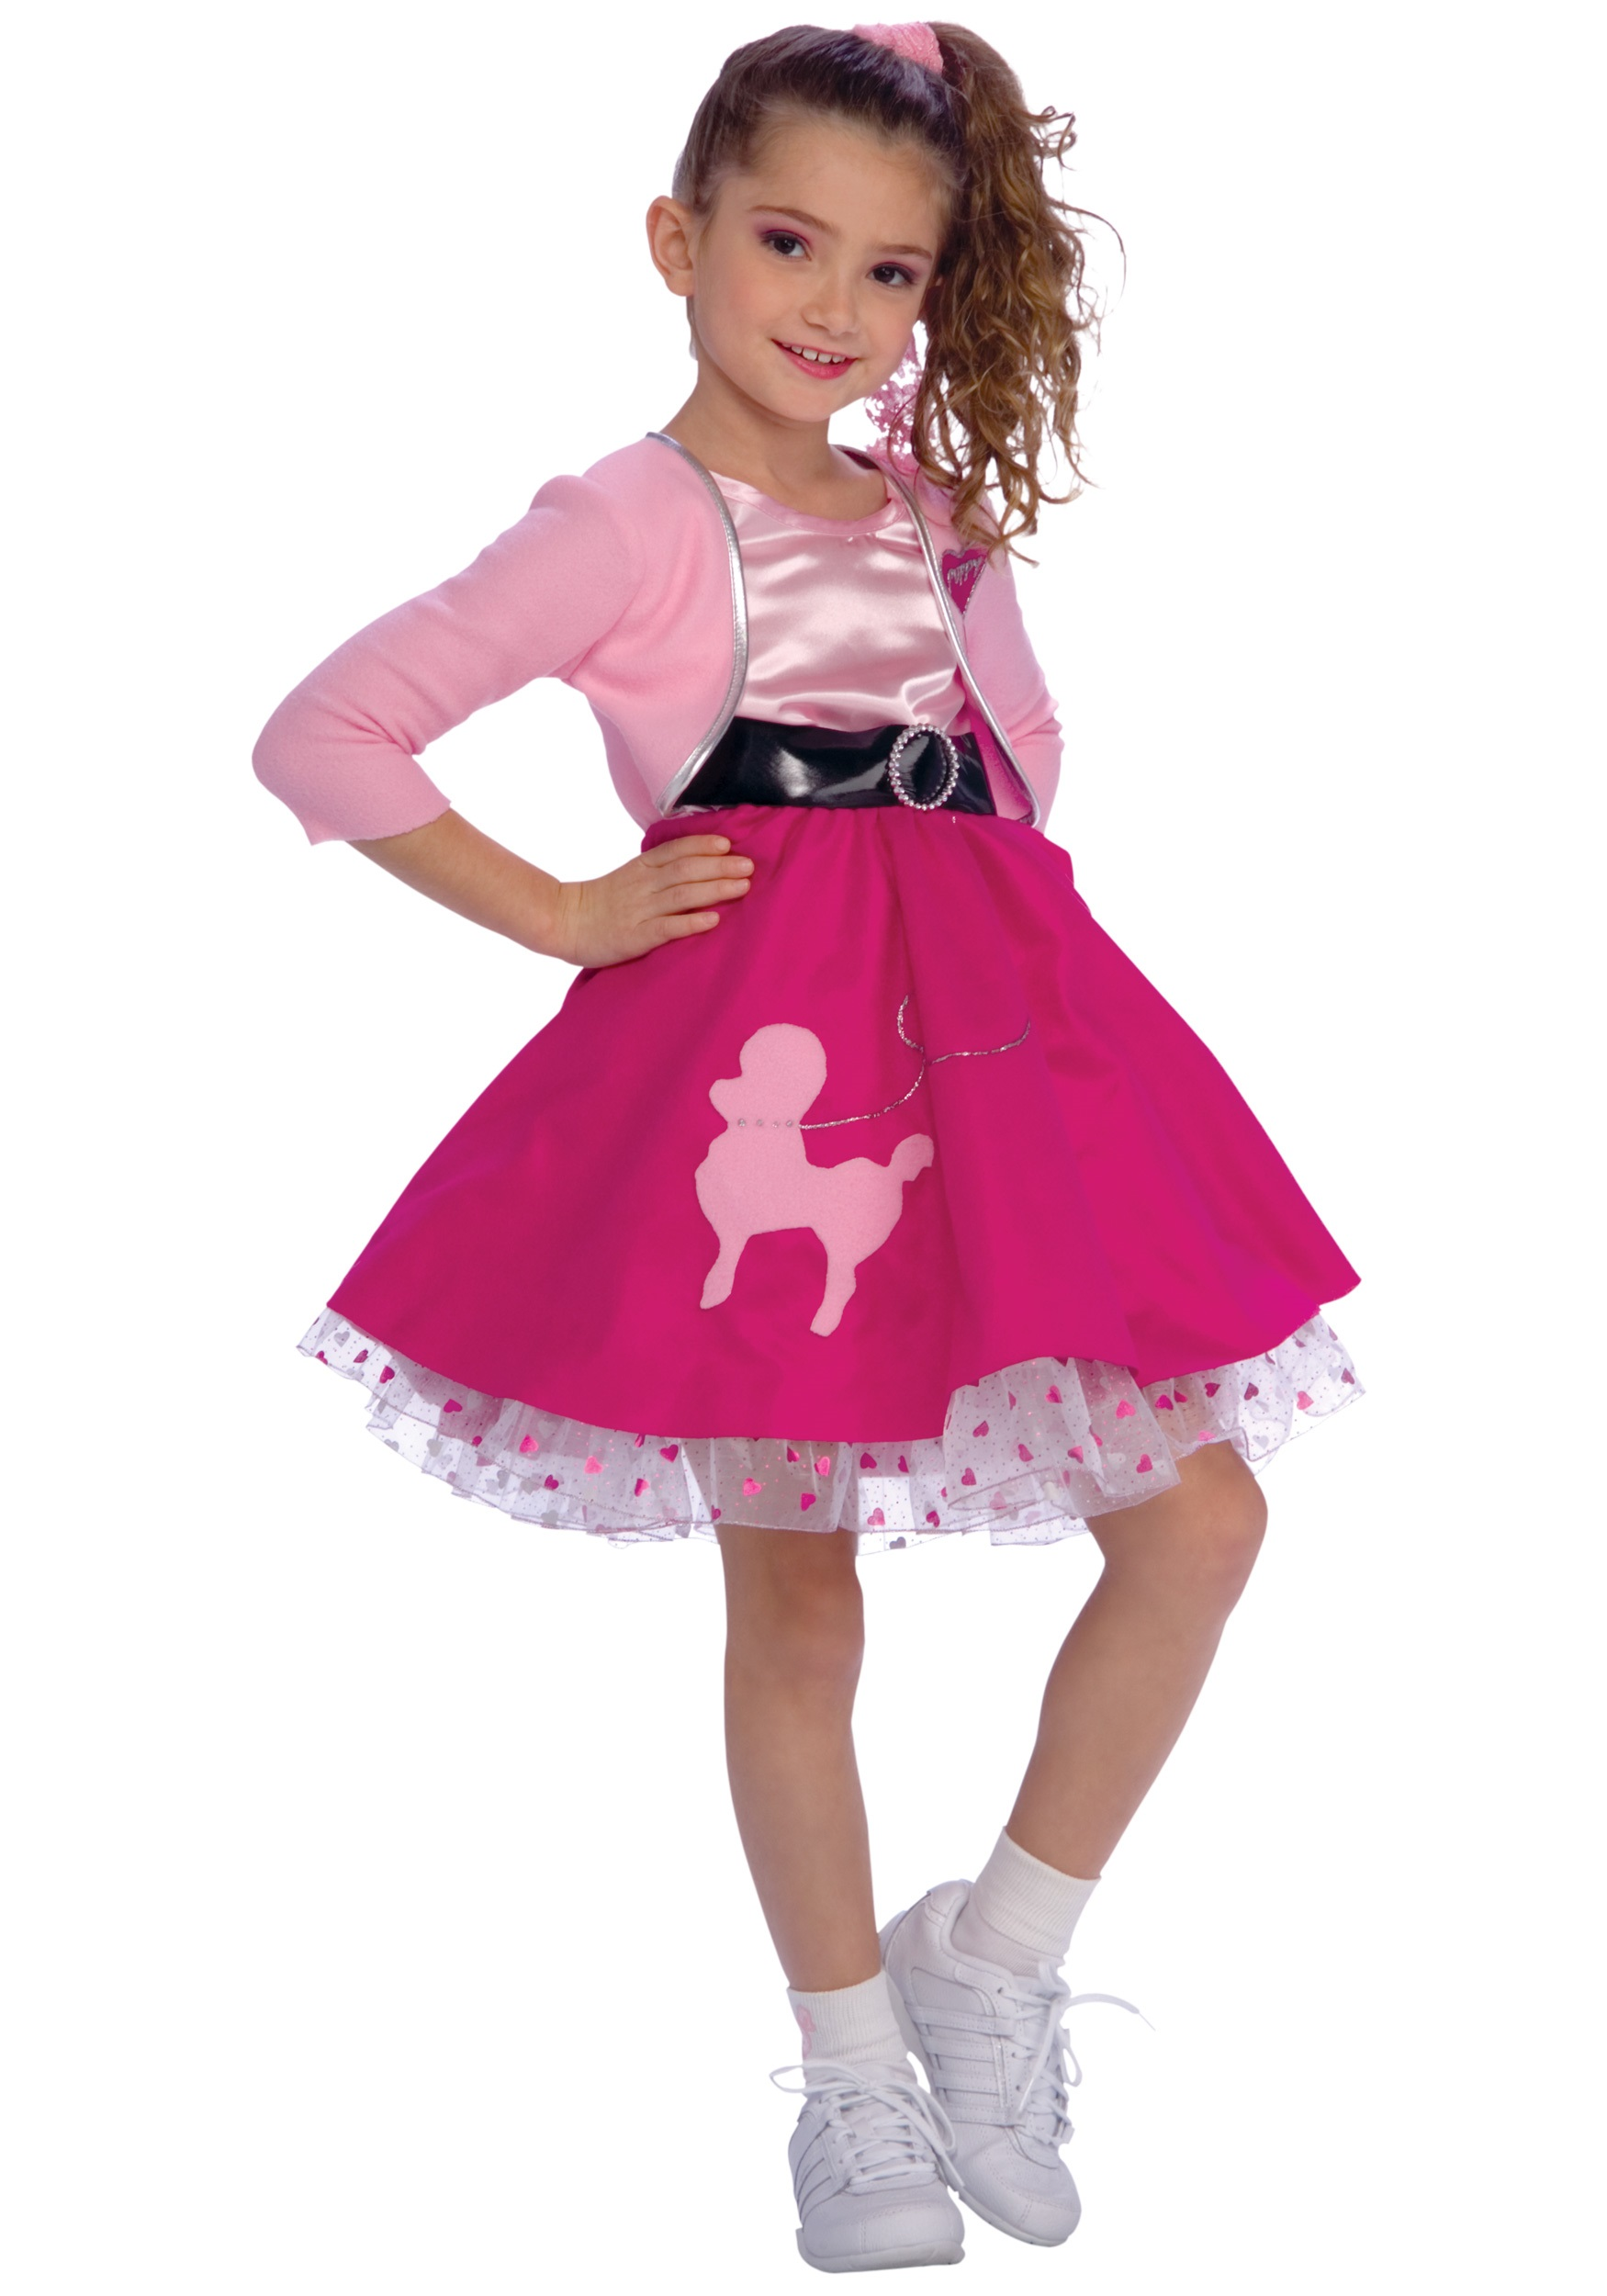 Girls Poodle Skirt Costume  sc 1 st  Halloween Costume & Girls Poodle Skirt Costume - Girls 50s Poodle Skirt Costumes